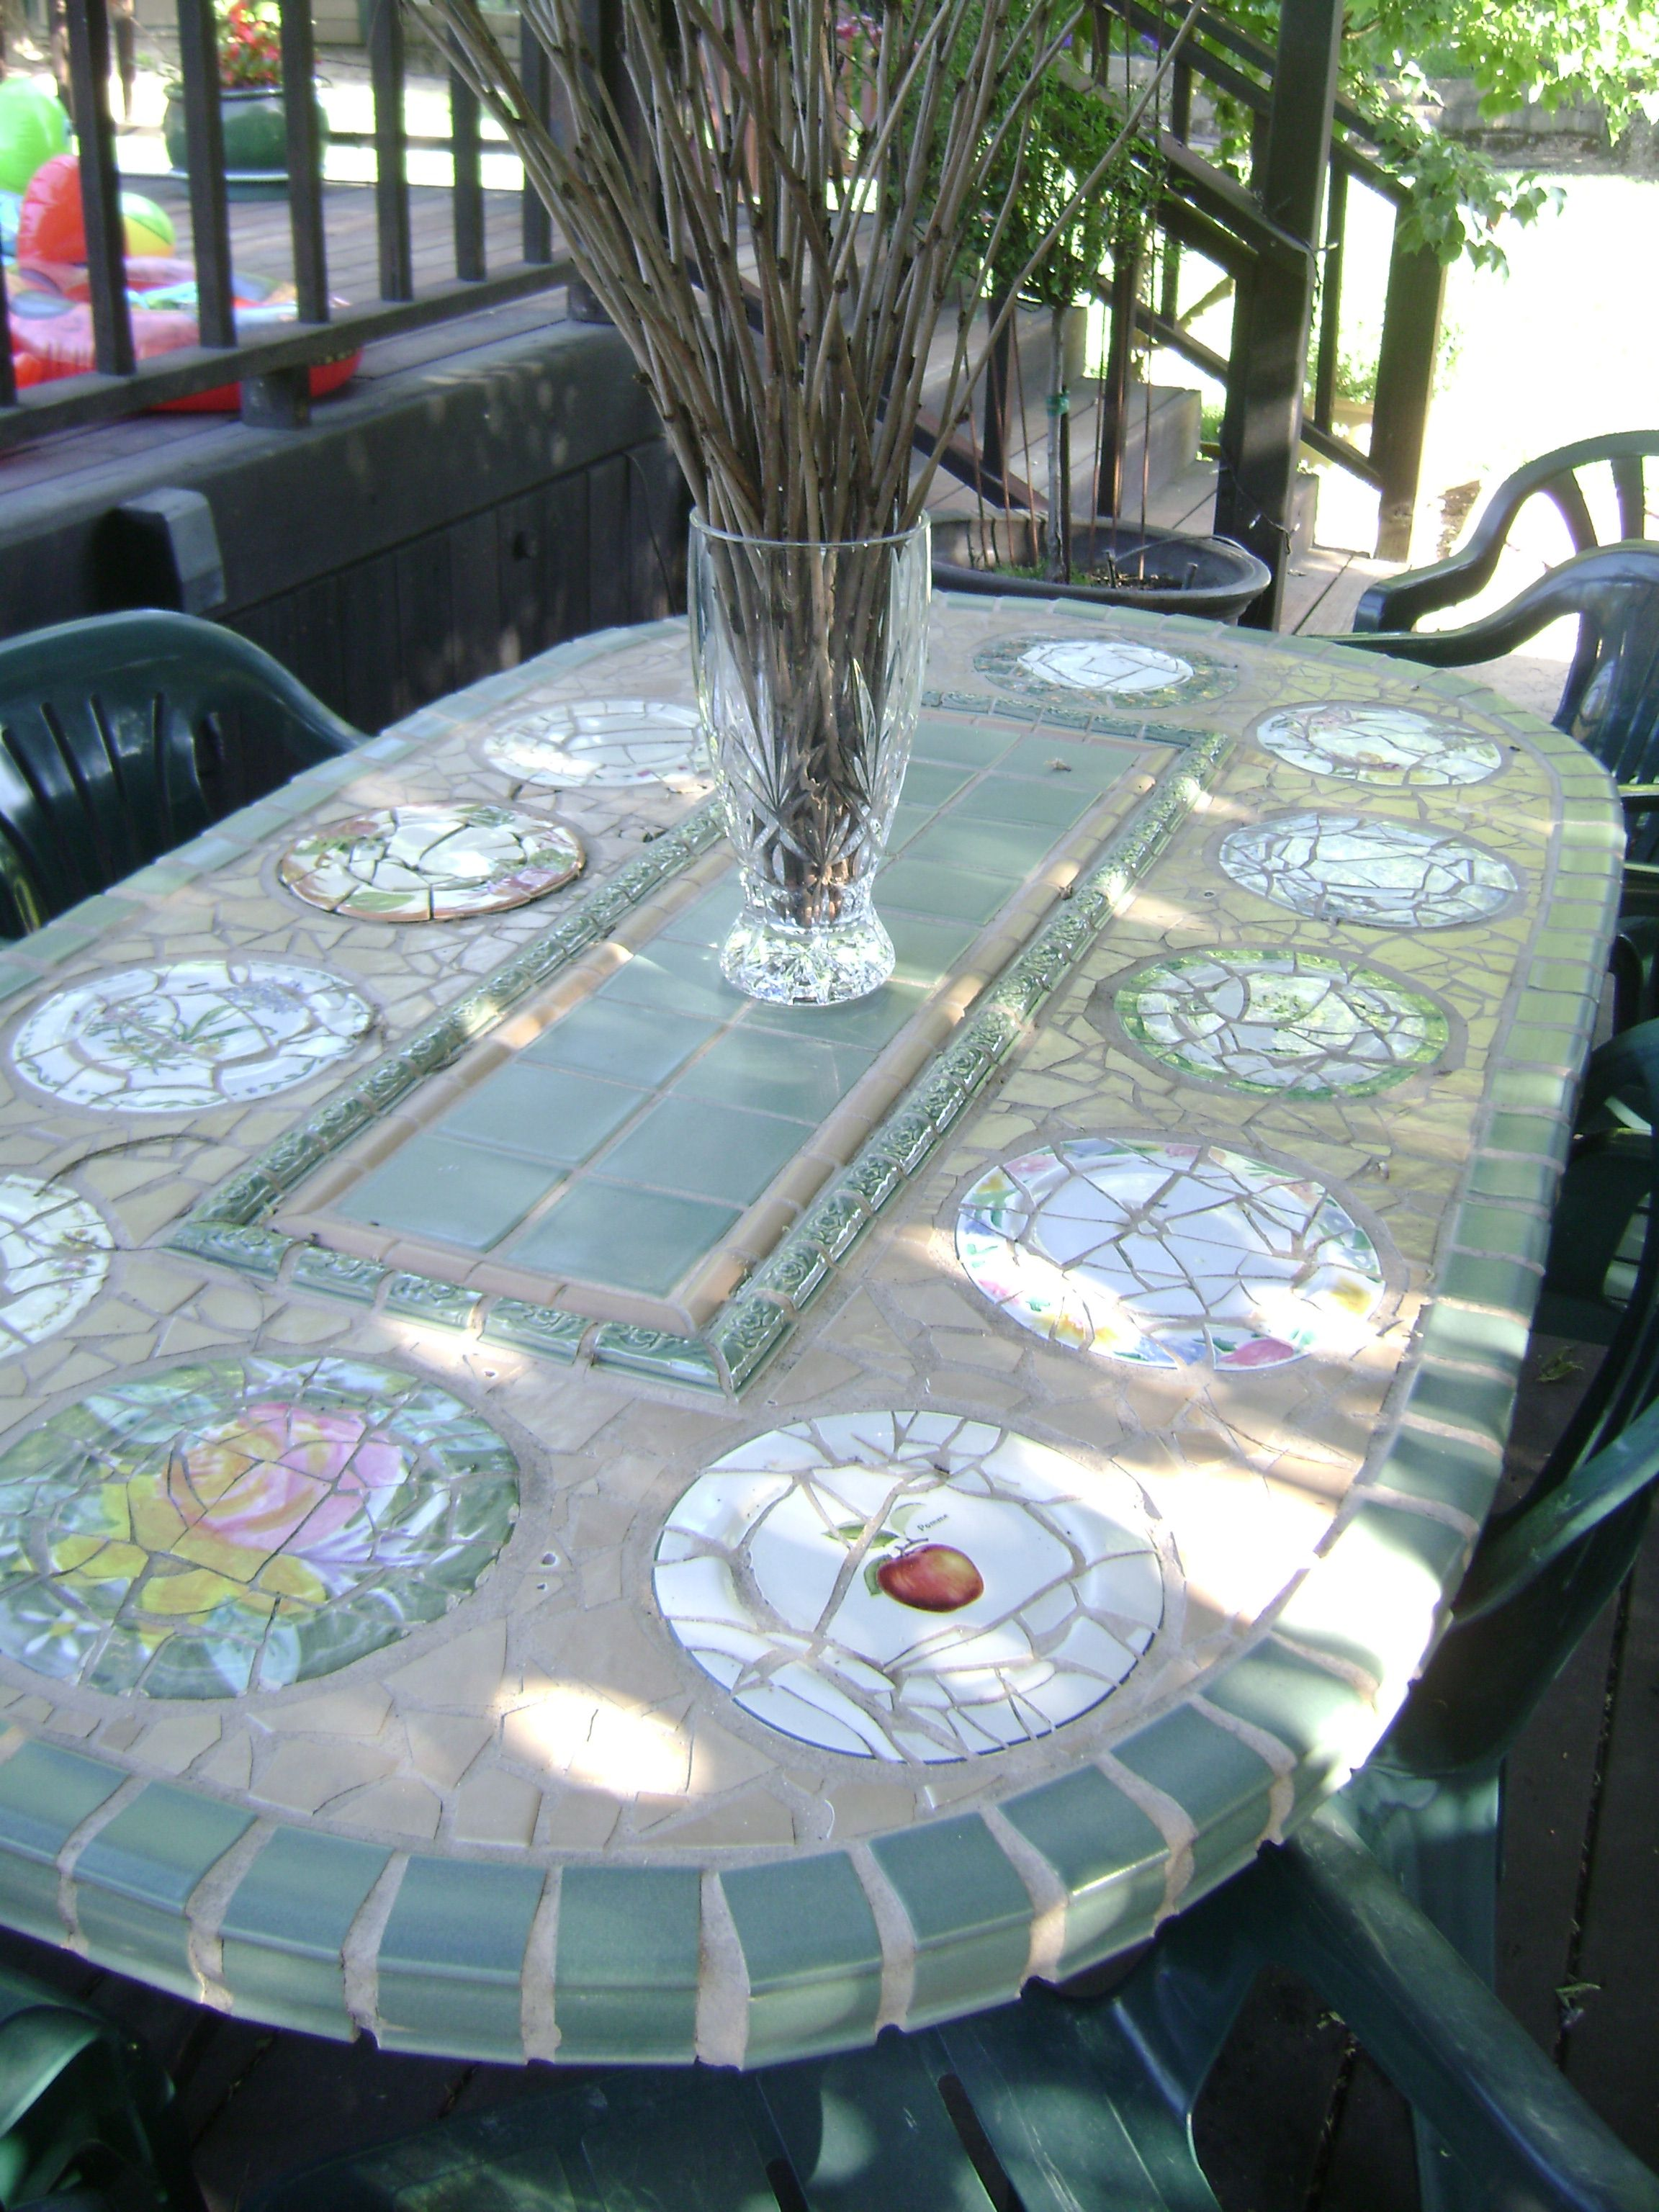 Captivating Mosaic Patio Table I Made From Iron Table Legs I Got At Yard Sale Topped  With